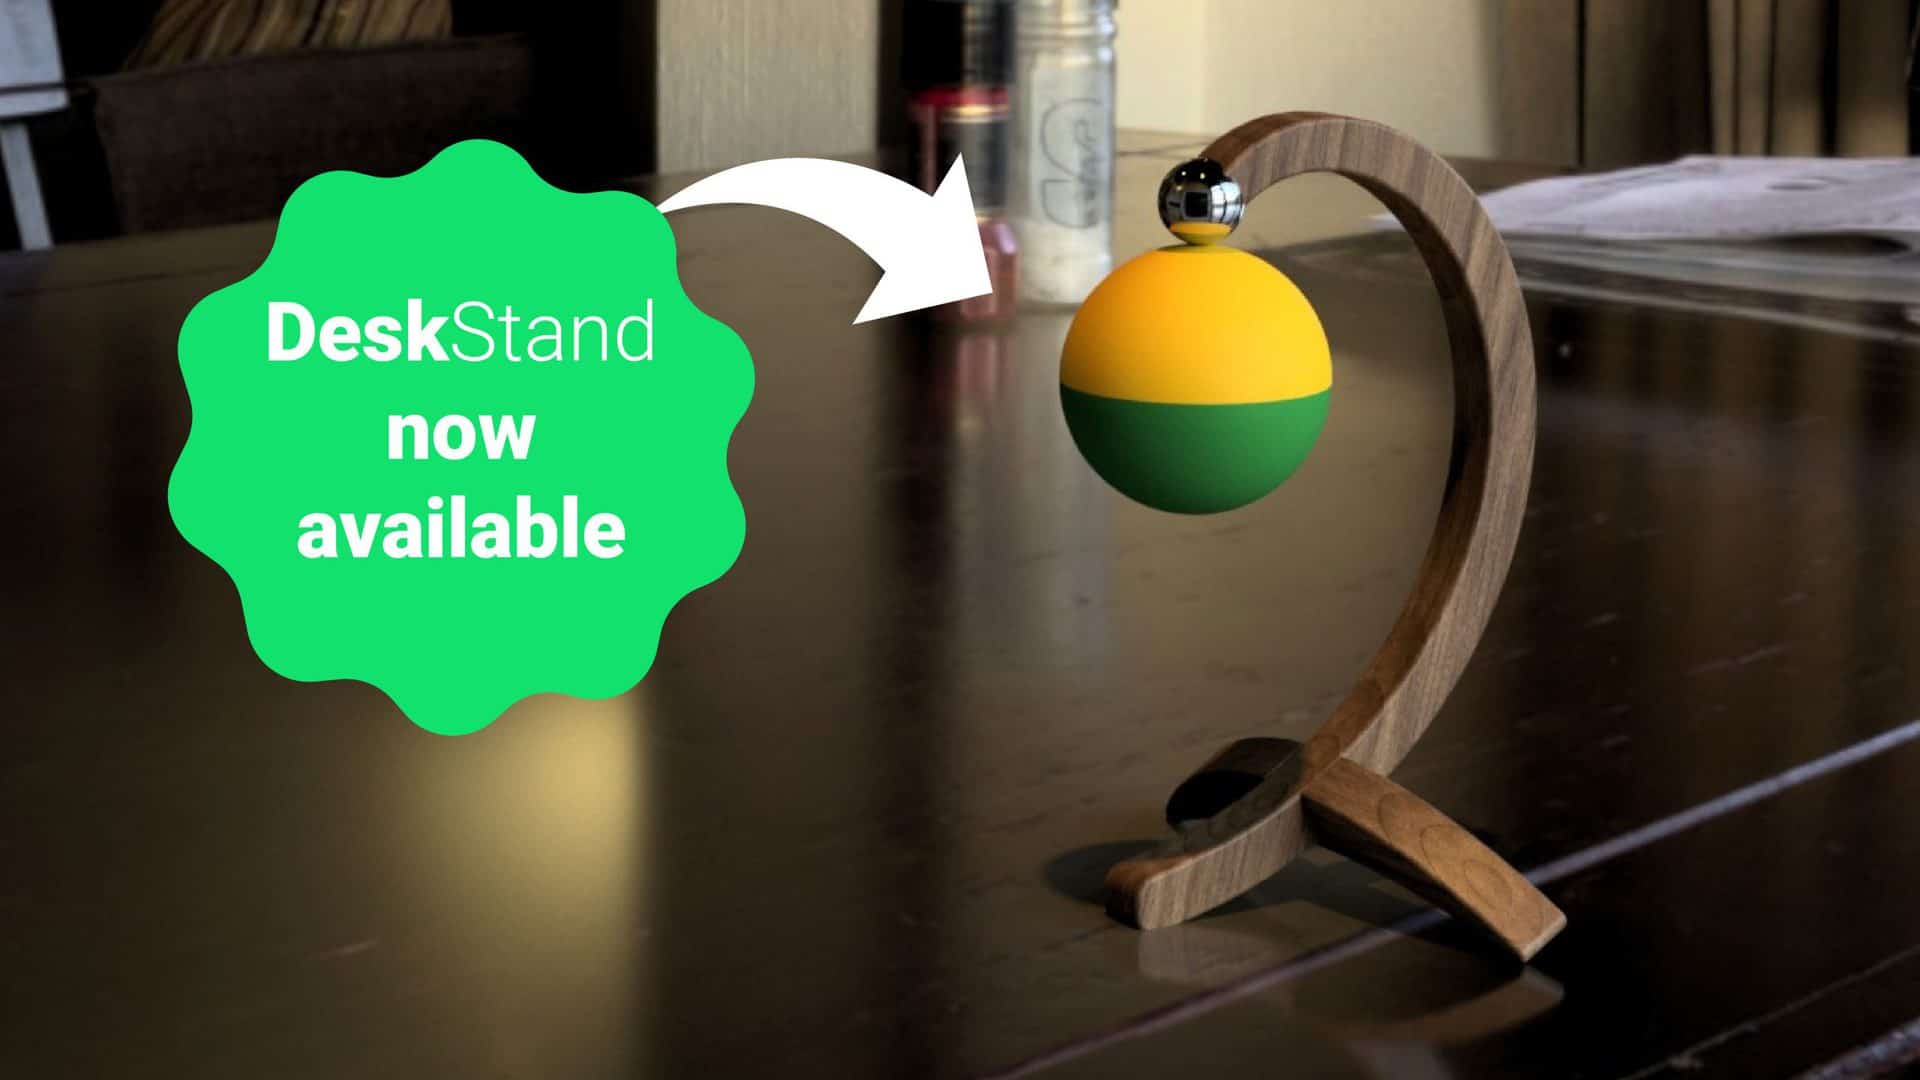 deskStand-Now-Available-01-scaled.jpg